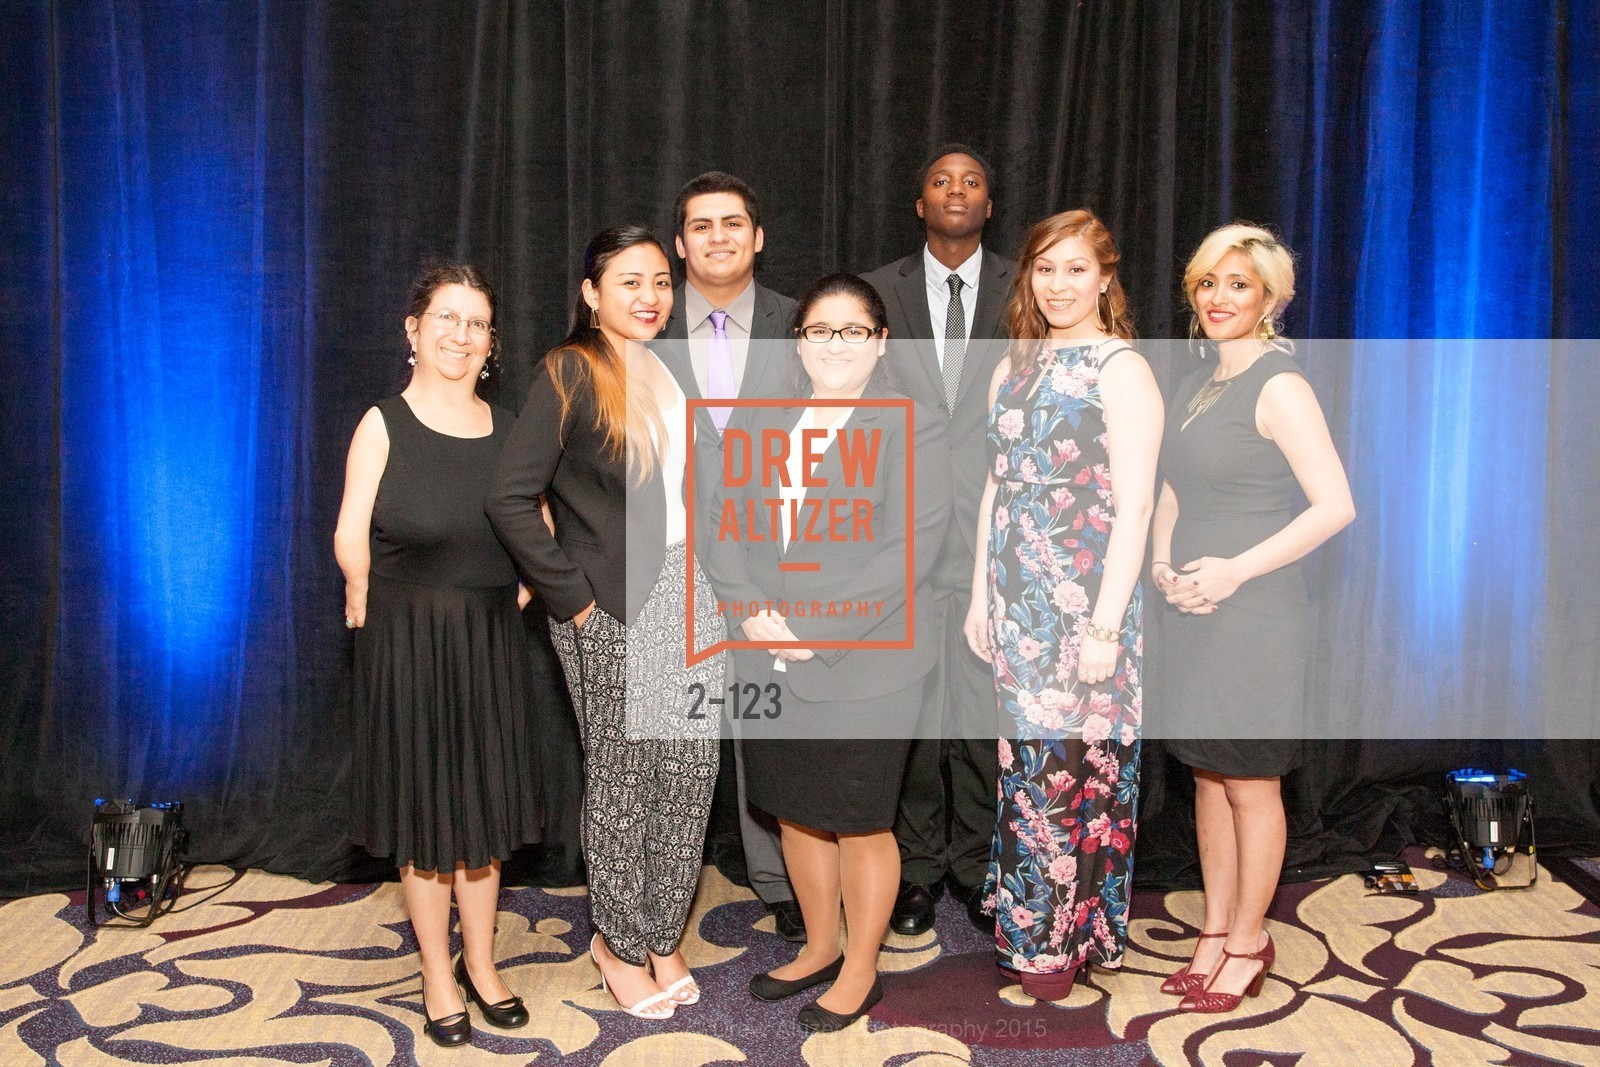 Jennifer Berger, Aeris Velasco, Joe Armijo, Carmen Sosa, Khari Brown, Yuri Huerta, Natasha Alani, 2015 Boys and Girls Club Annual Gala, The Fairmont San Francisco. 950 Mason St, May 20th, 2015,Drew Altizer, Drew Altizer Photography, full-service event agency, private events, San Francisco photographer, photographer California